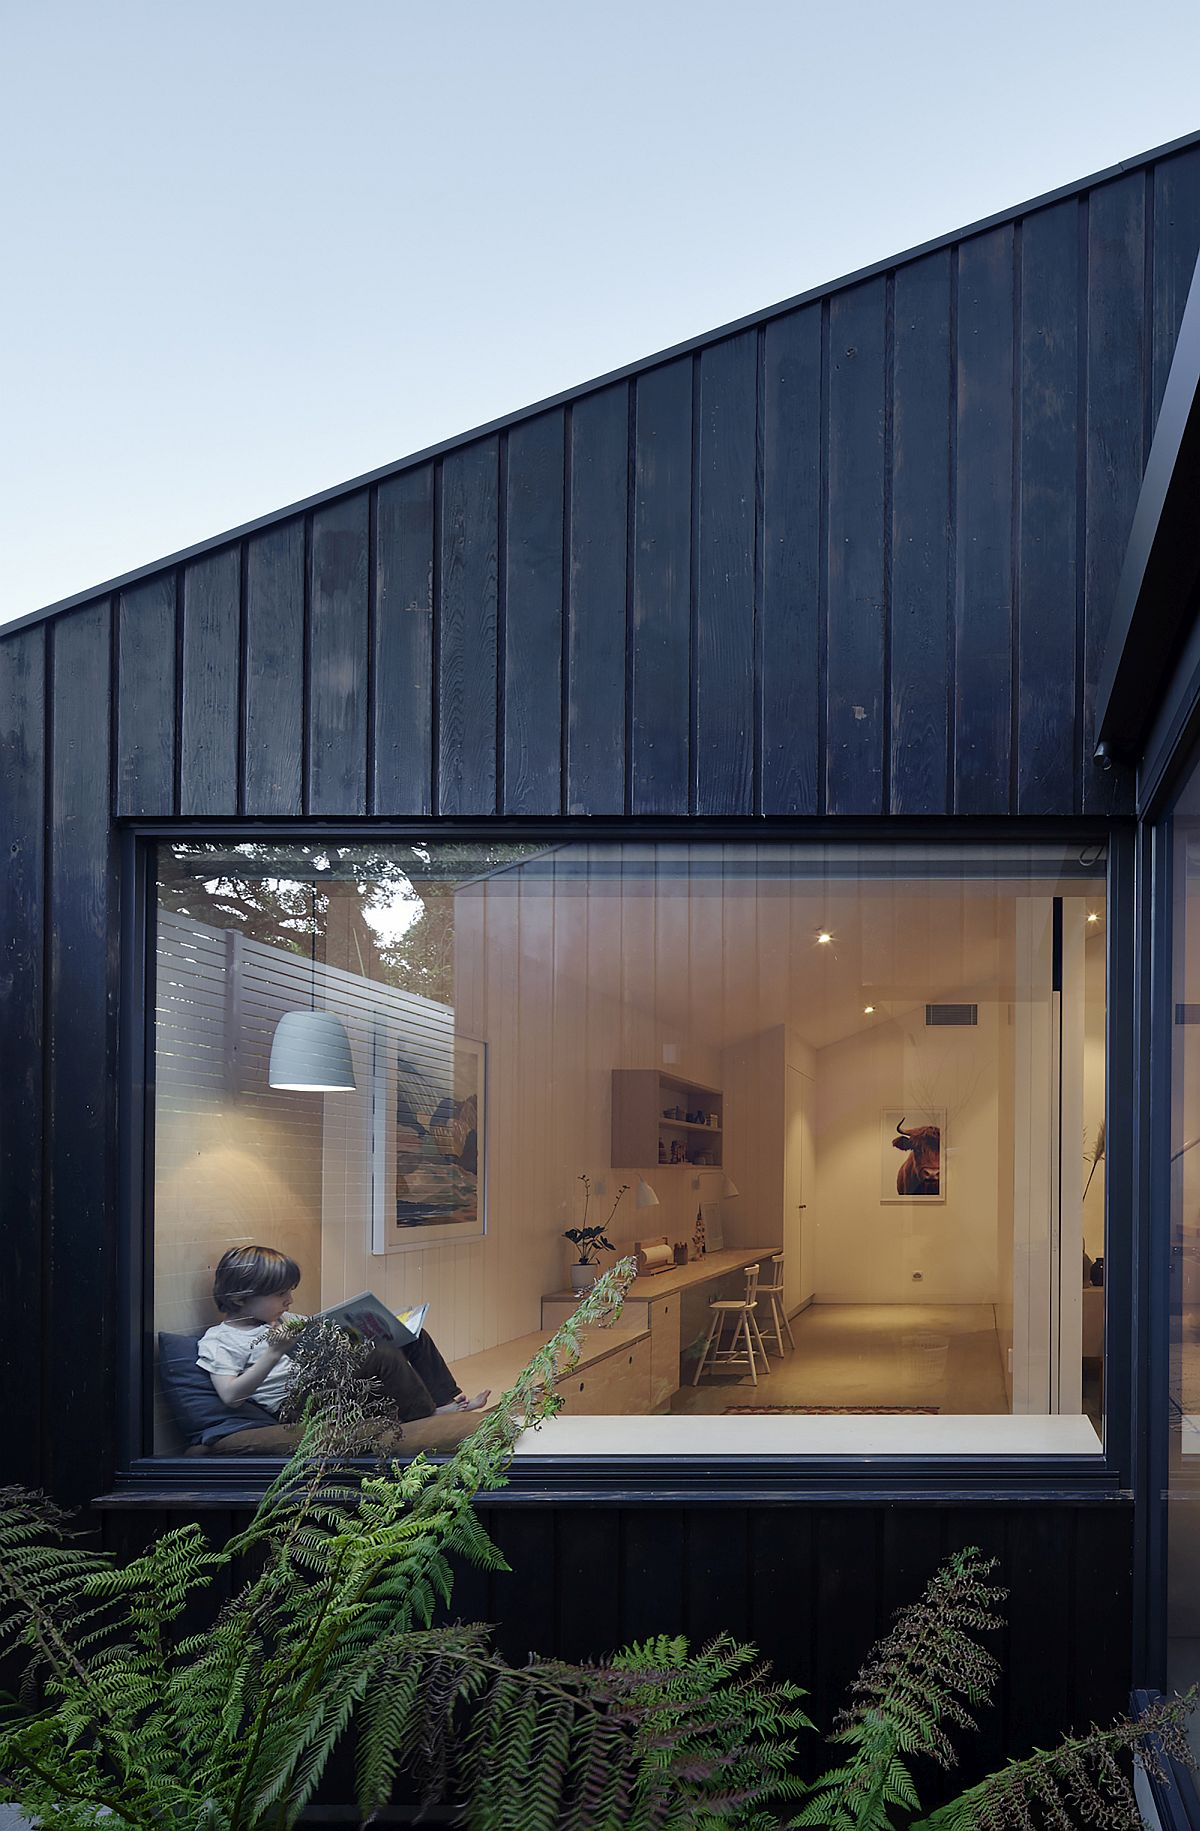 Box-styled windows with seat next to it that offer wonderful and relaxing views